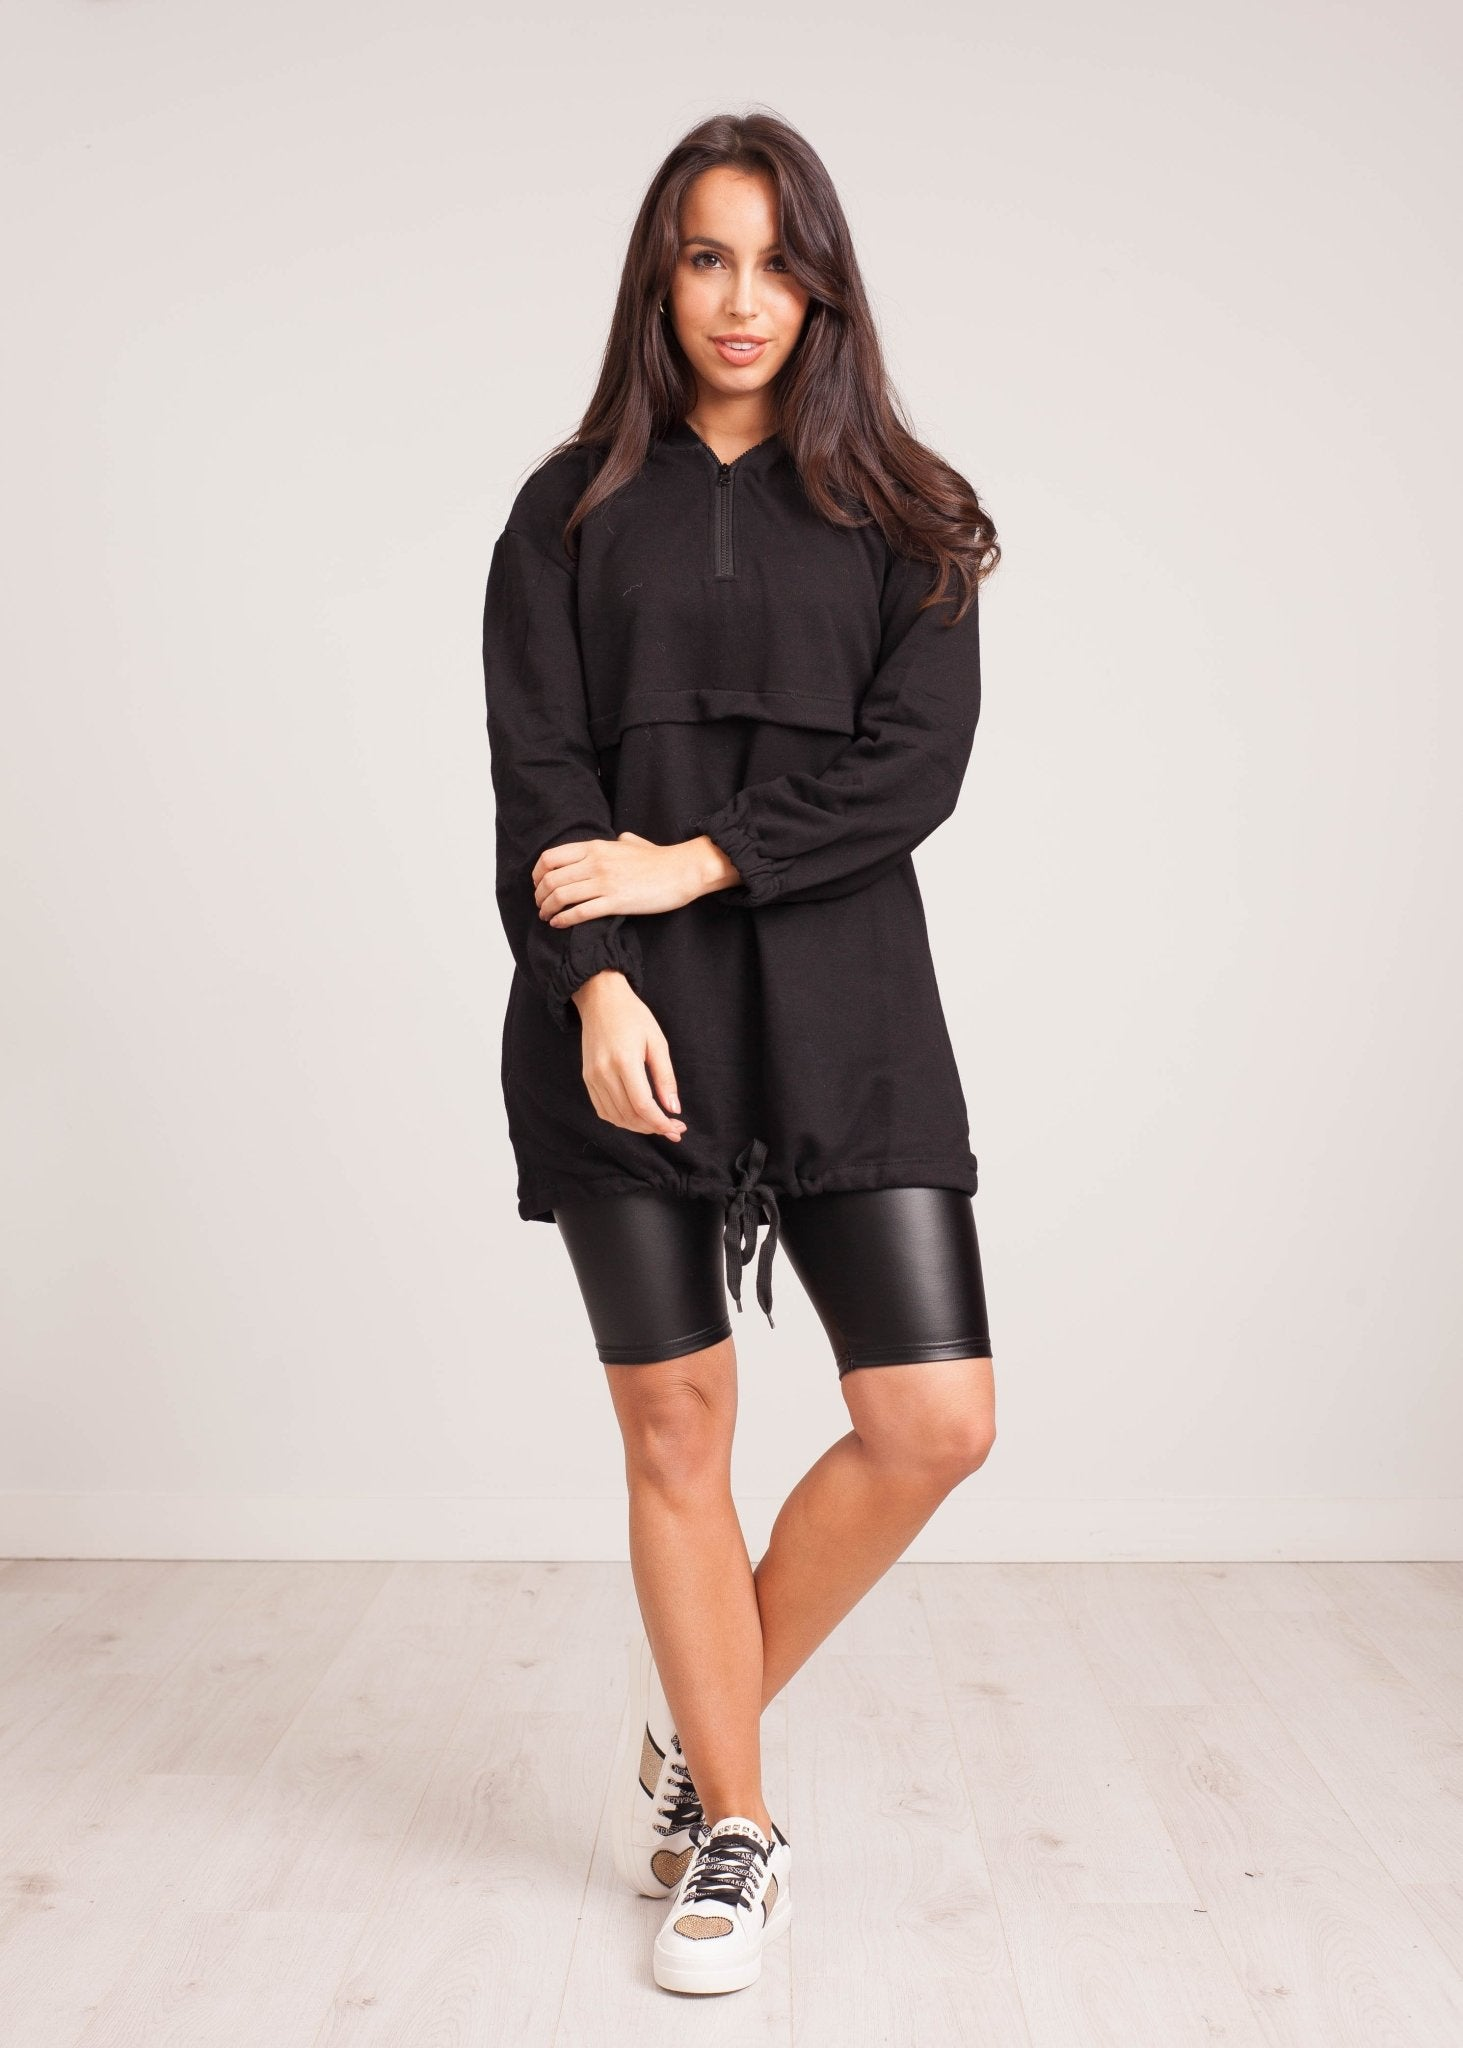 Kate Leather Look Bike Shorts in Black - The Walk in Wardrobe